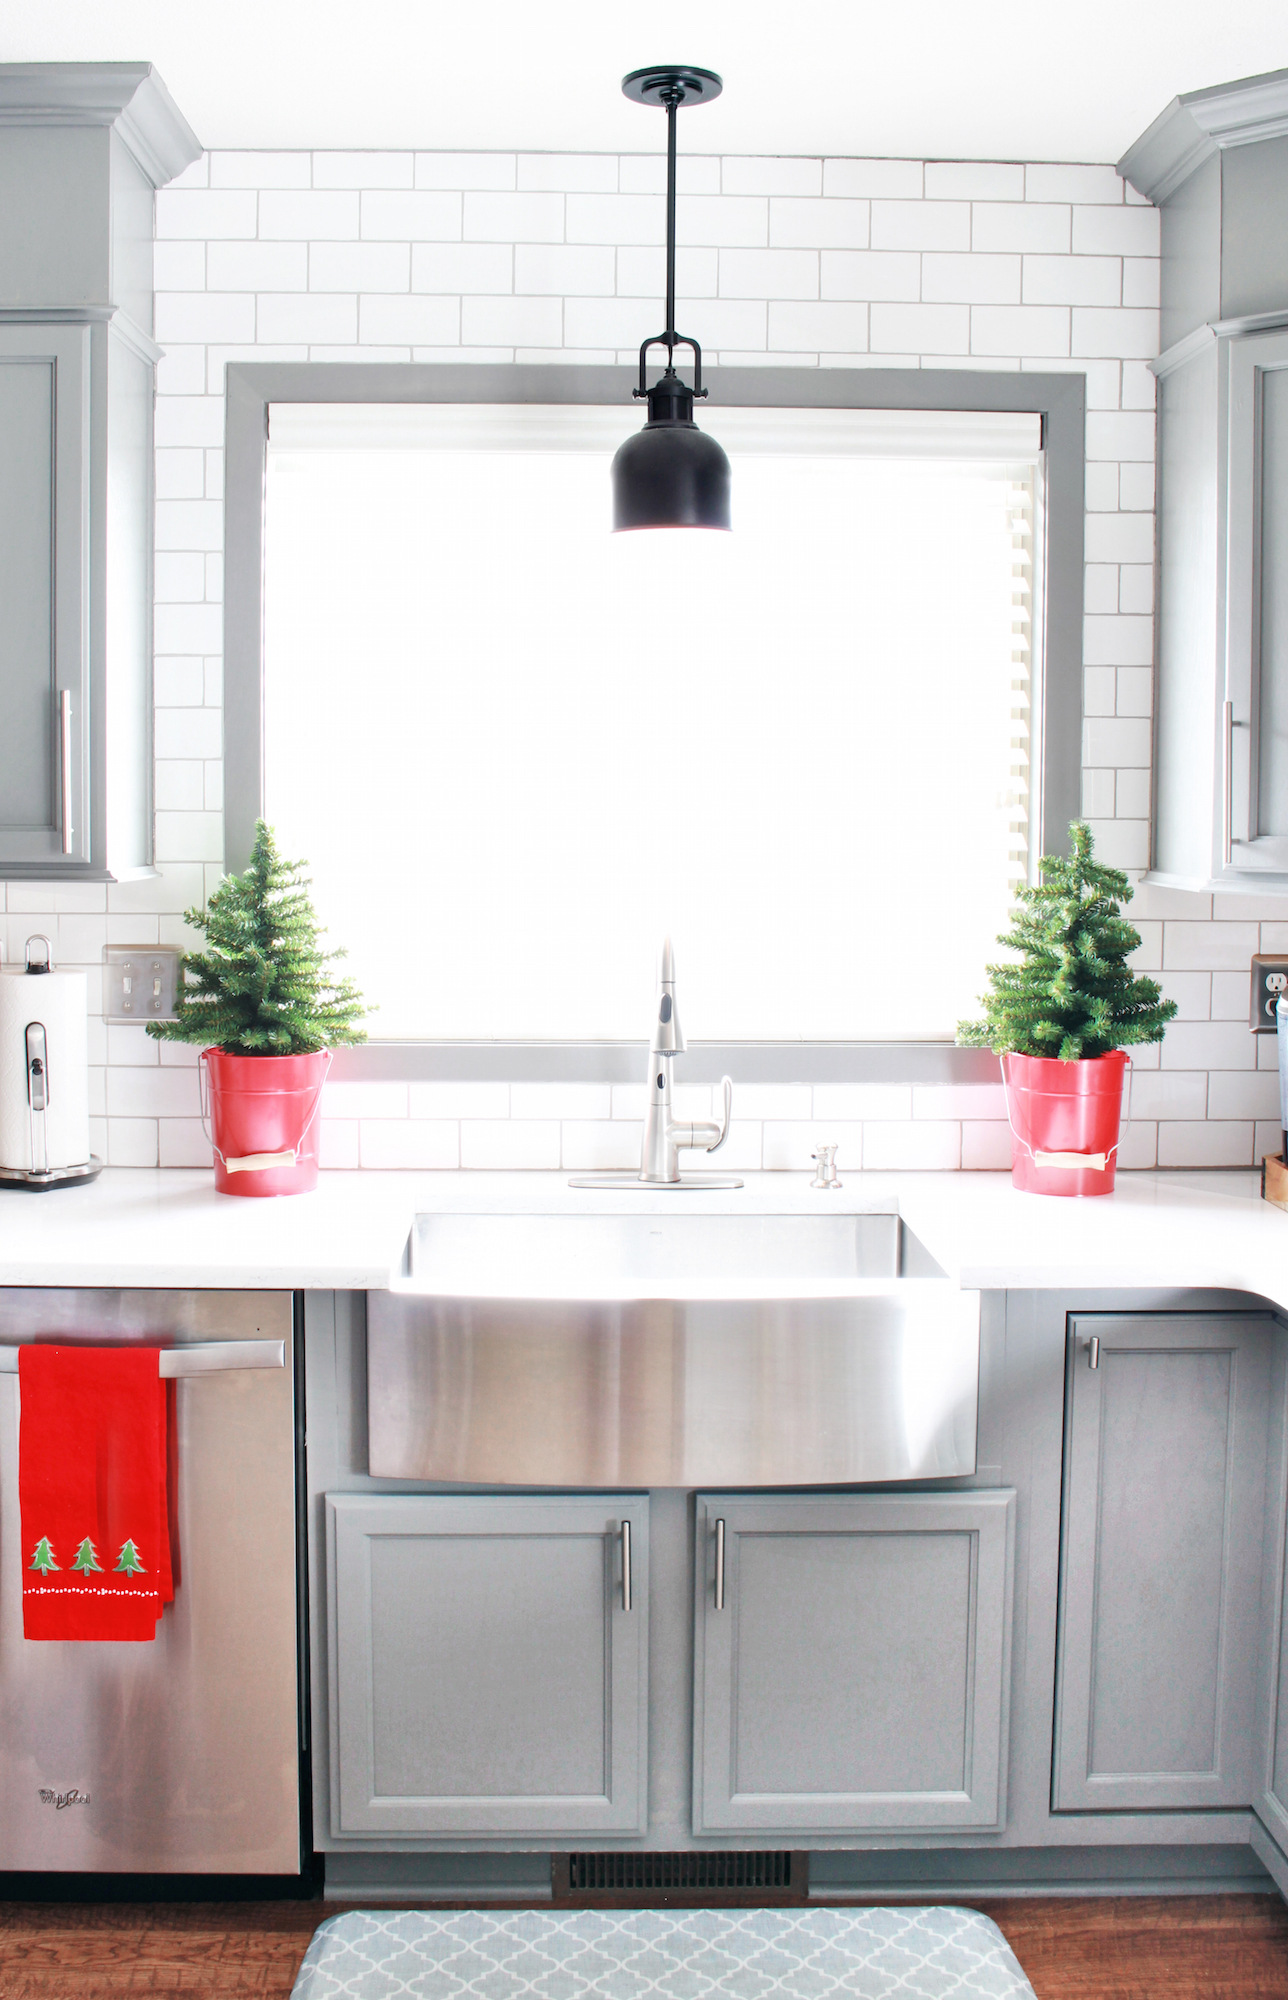 3 Easy Ways To Update Your Kitchen On A Budget